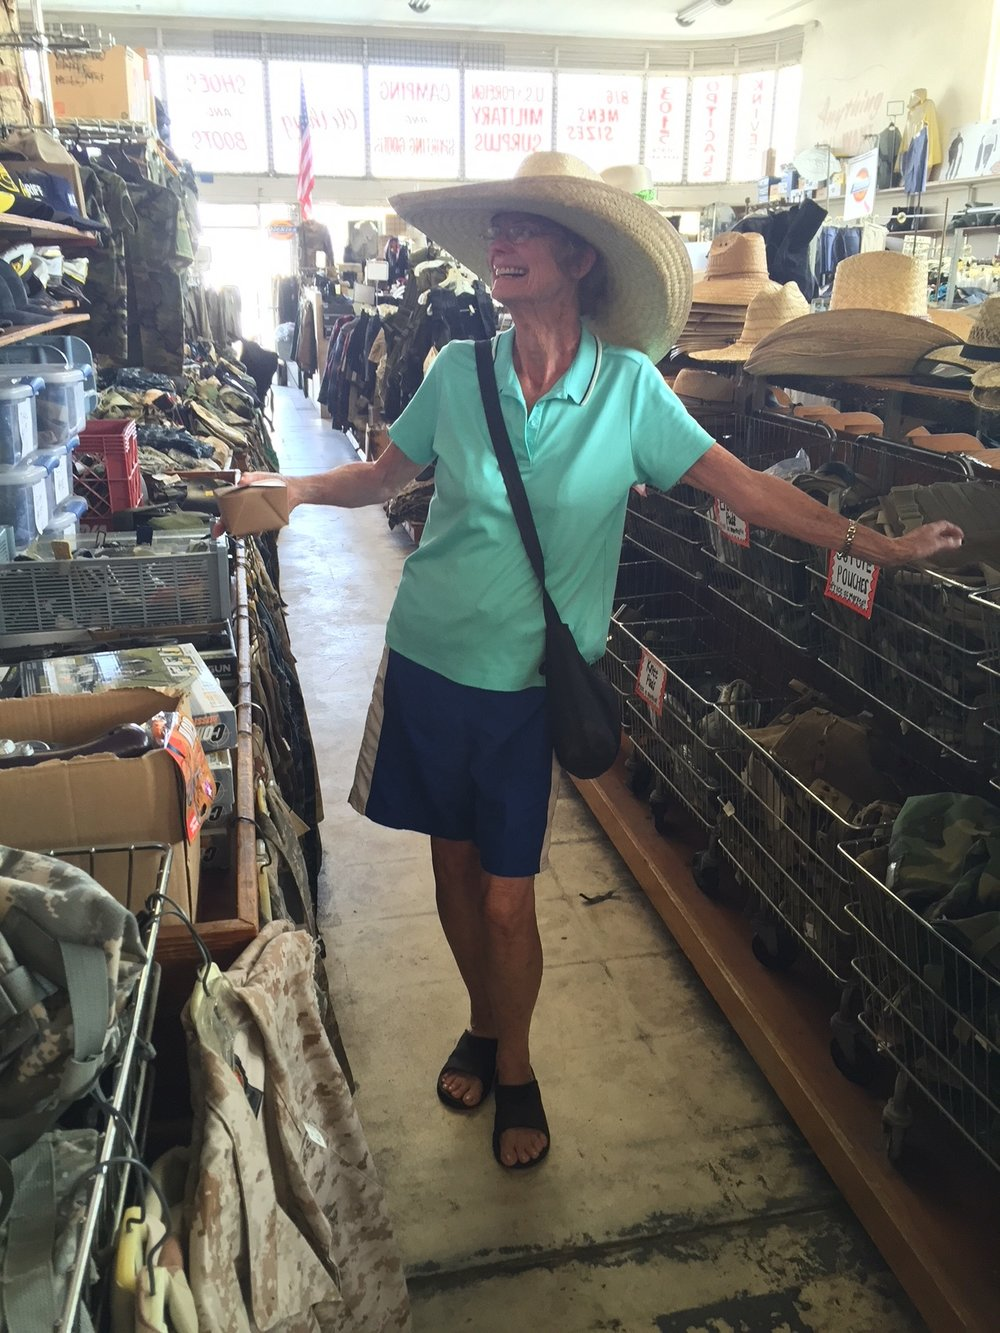 modeling a hat in a california army surplus store